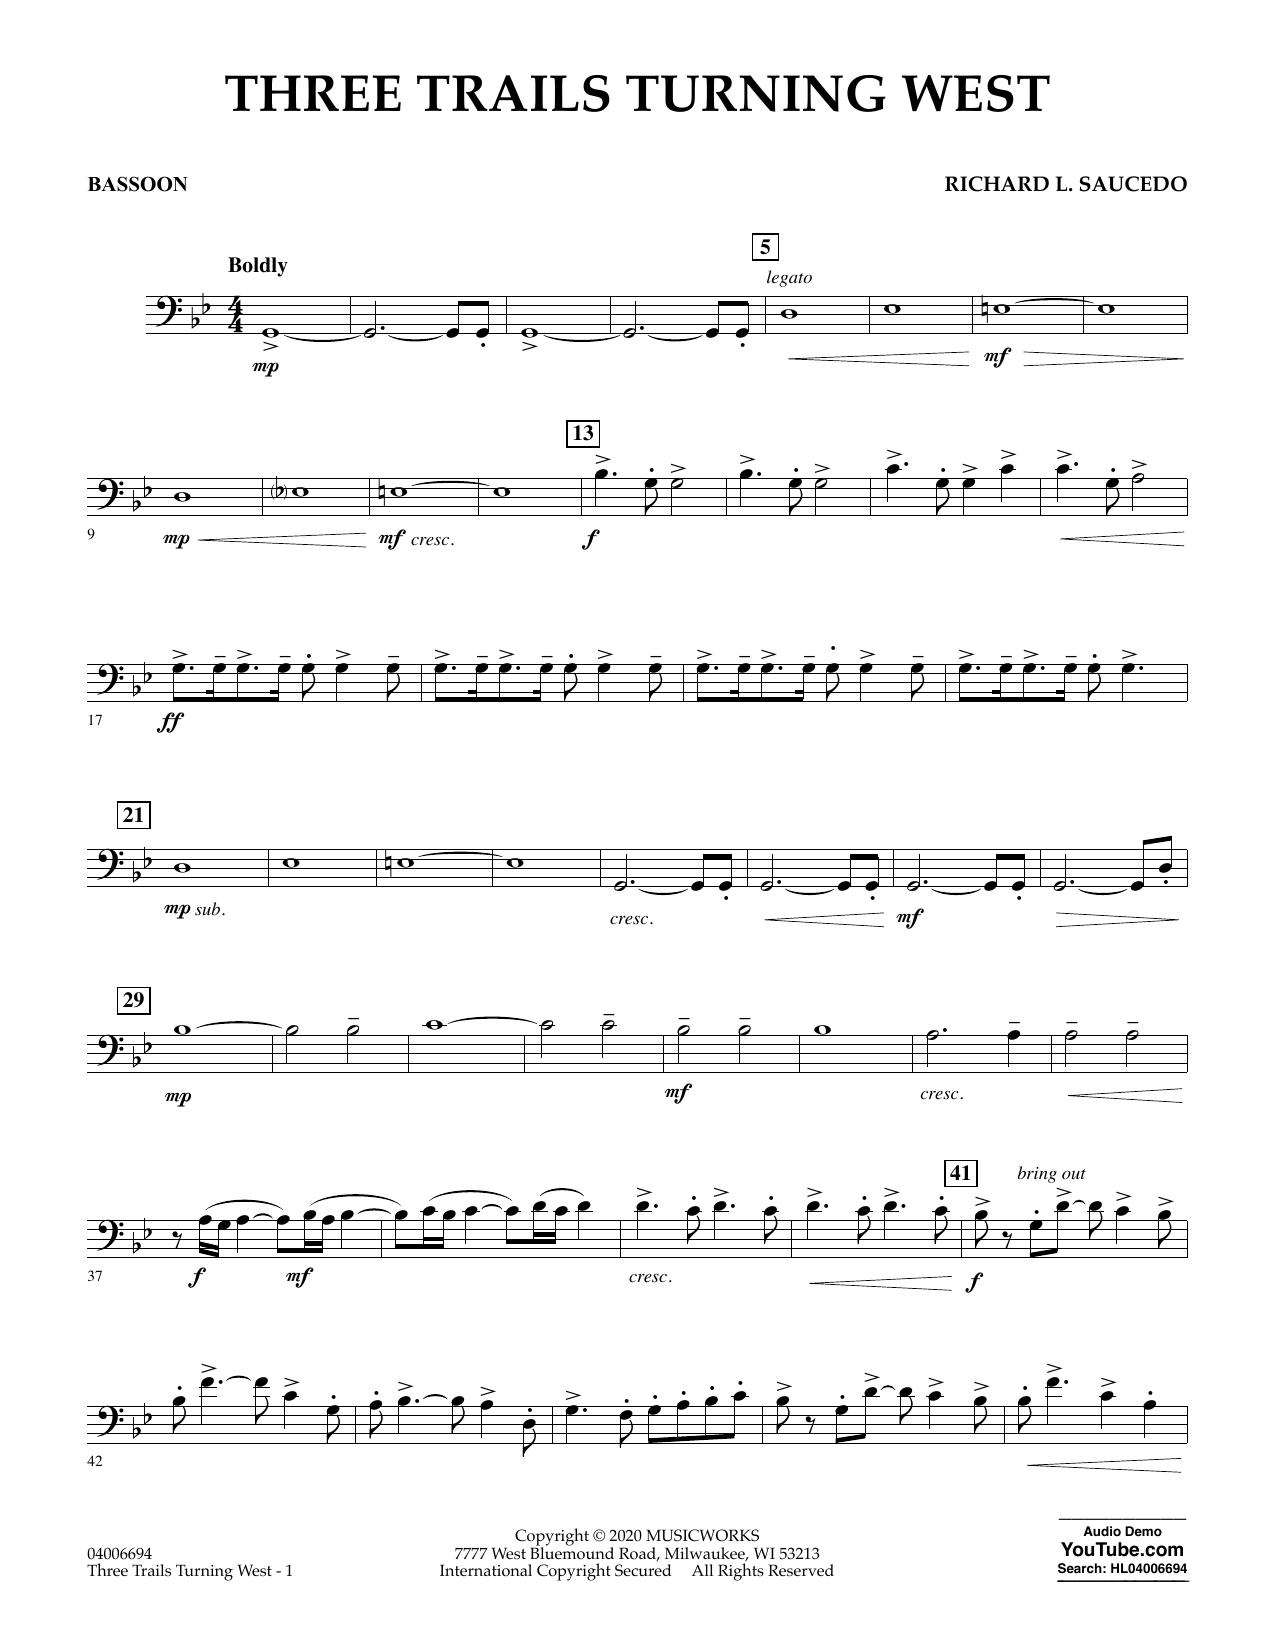 Richard L. Saucedo Three Trails Turning West - Bassoon sheet music notes and chords. Download Printable PDF.